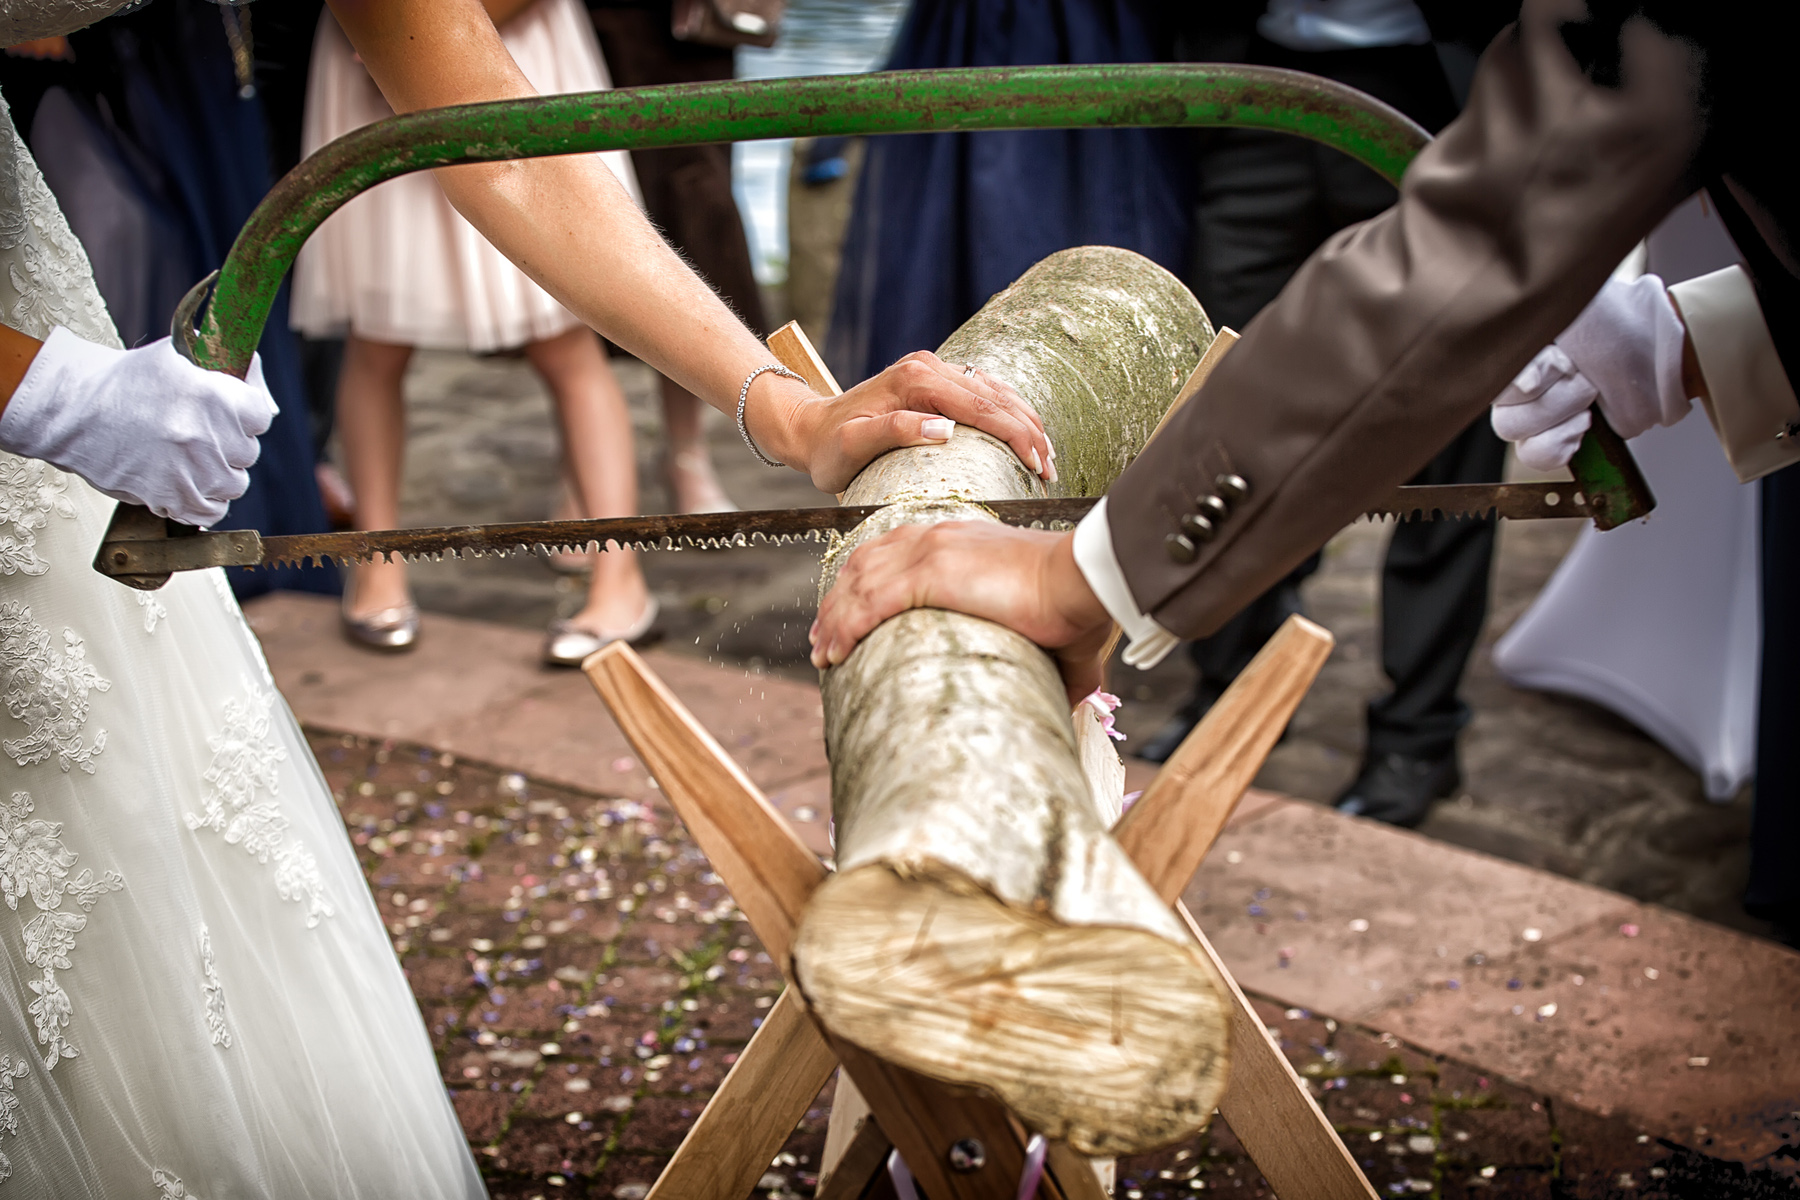 Bride and groom sawing a log at their wedding